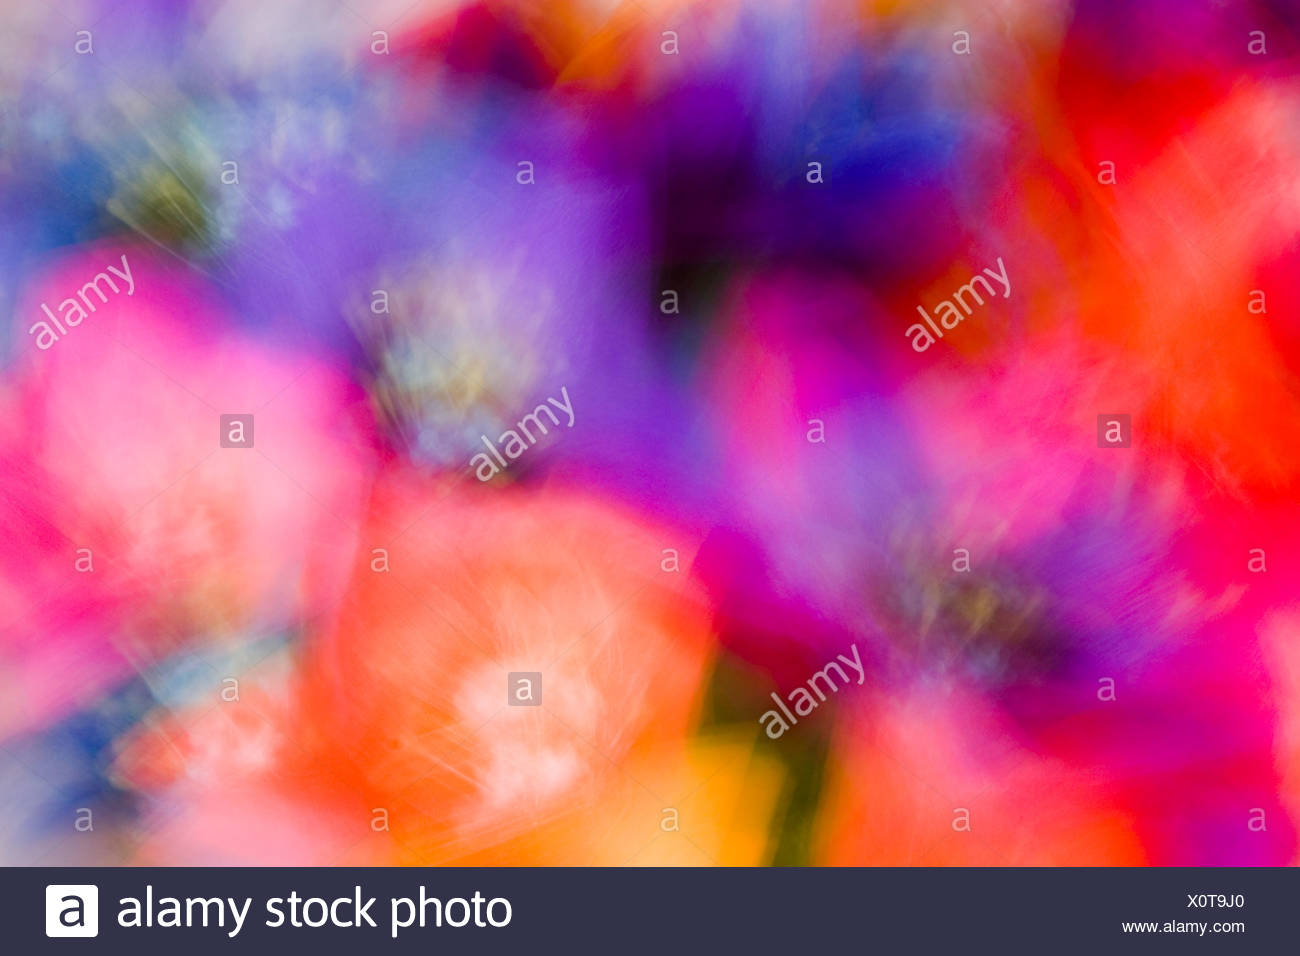 Abstract design of silk flowers with motion blur usa stock photo abstract design of silk flowers with motion blur usa mightylinksfo